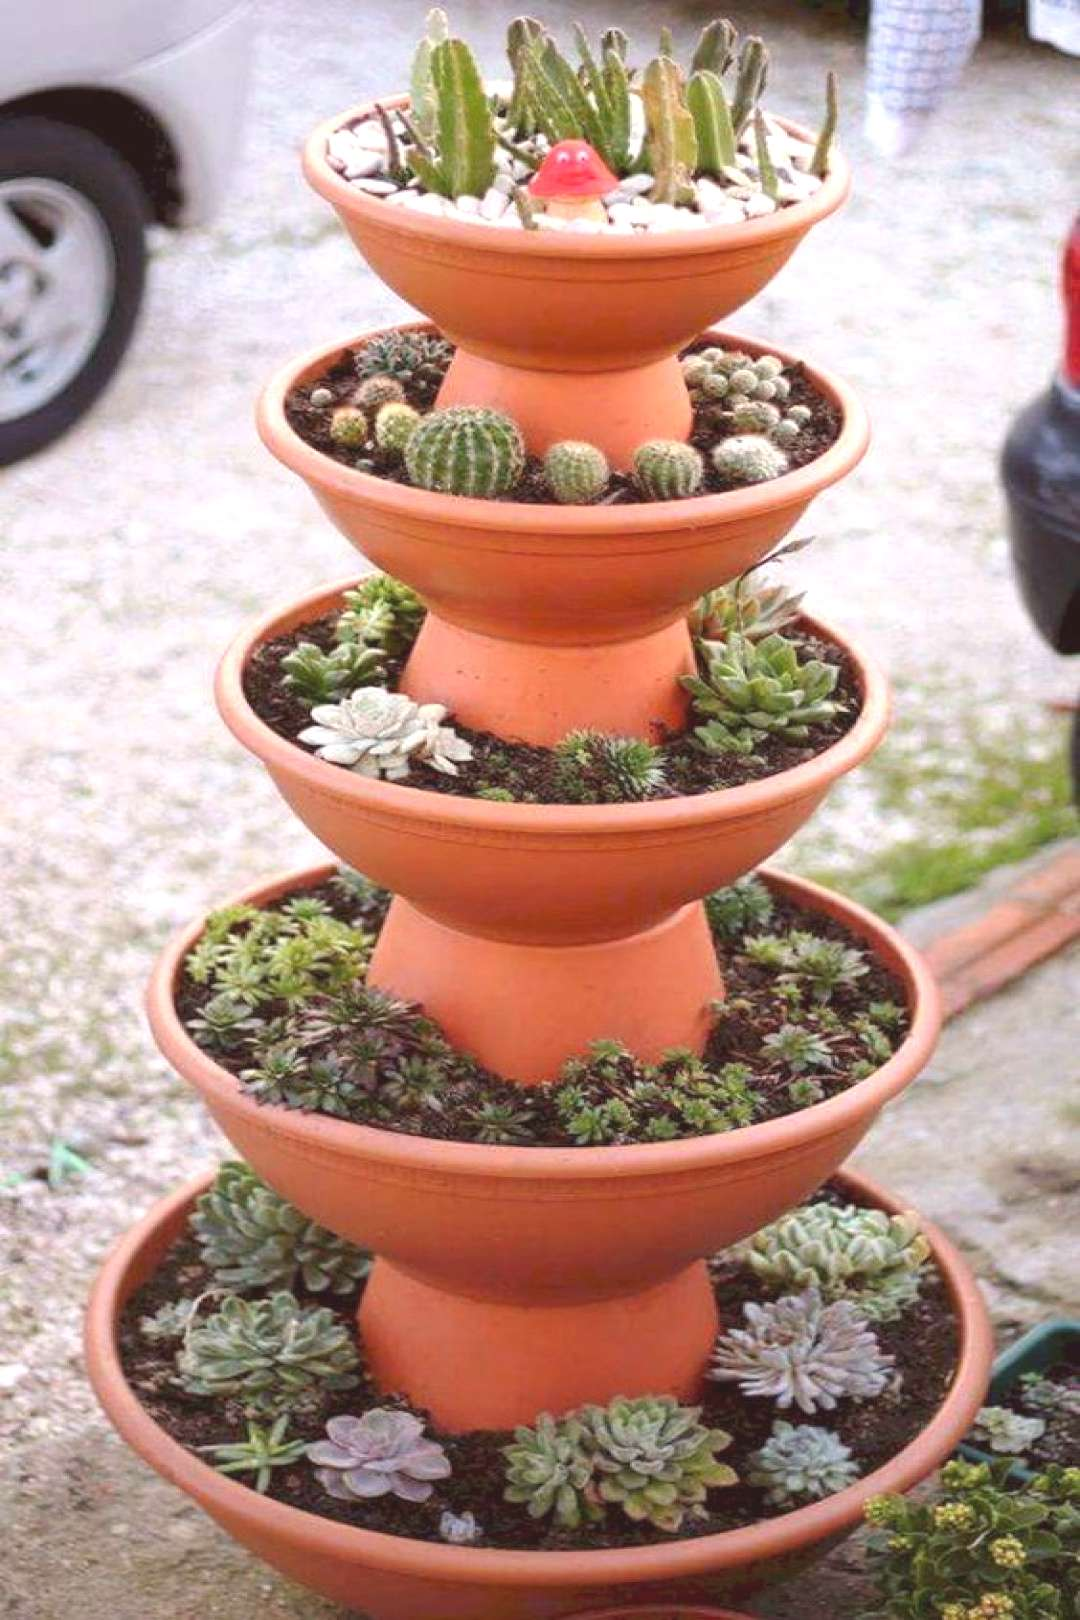 100 beautiful DIY pots and container garden ideas (101)  ve